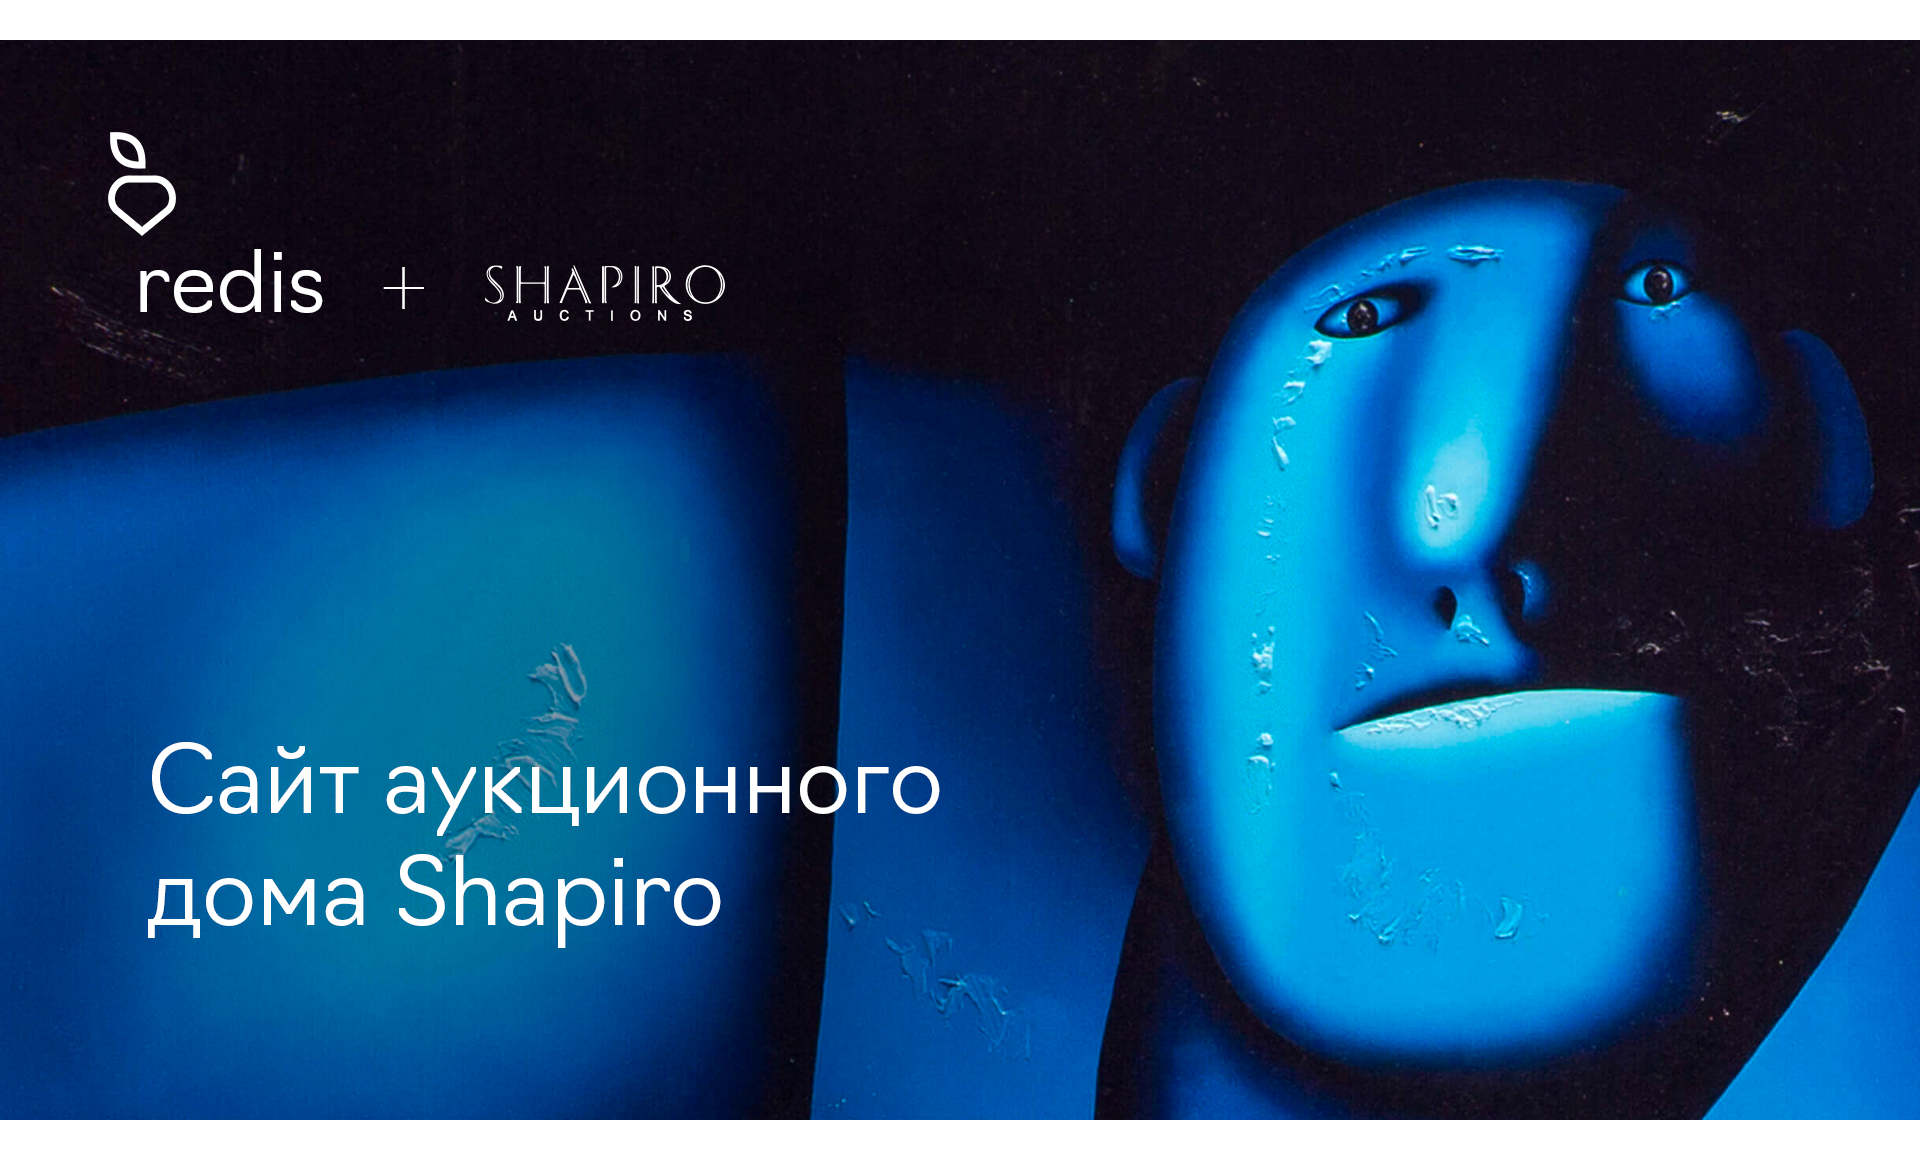 Shapiro Auctions